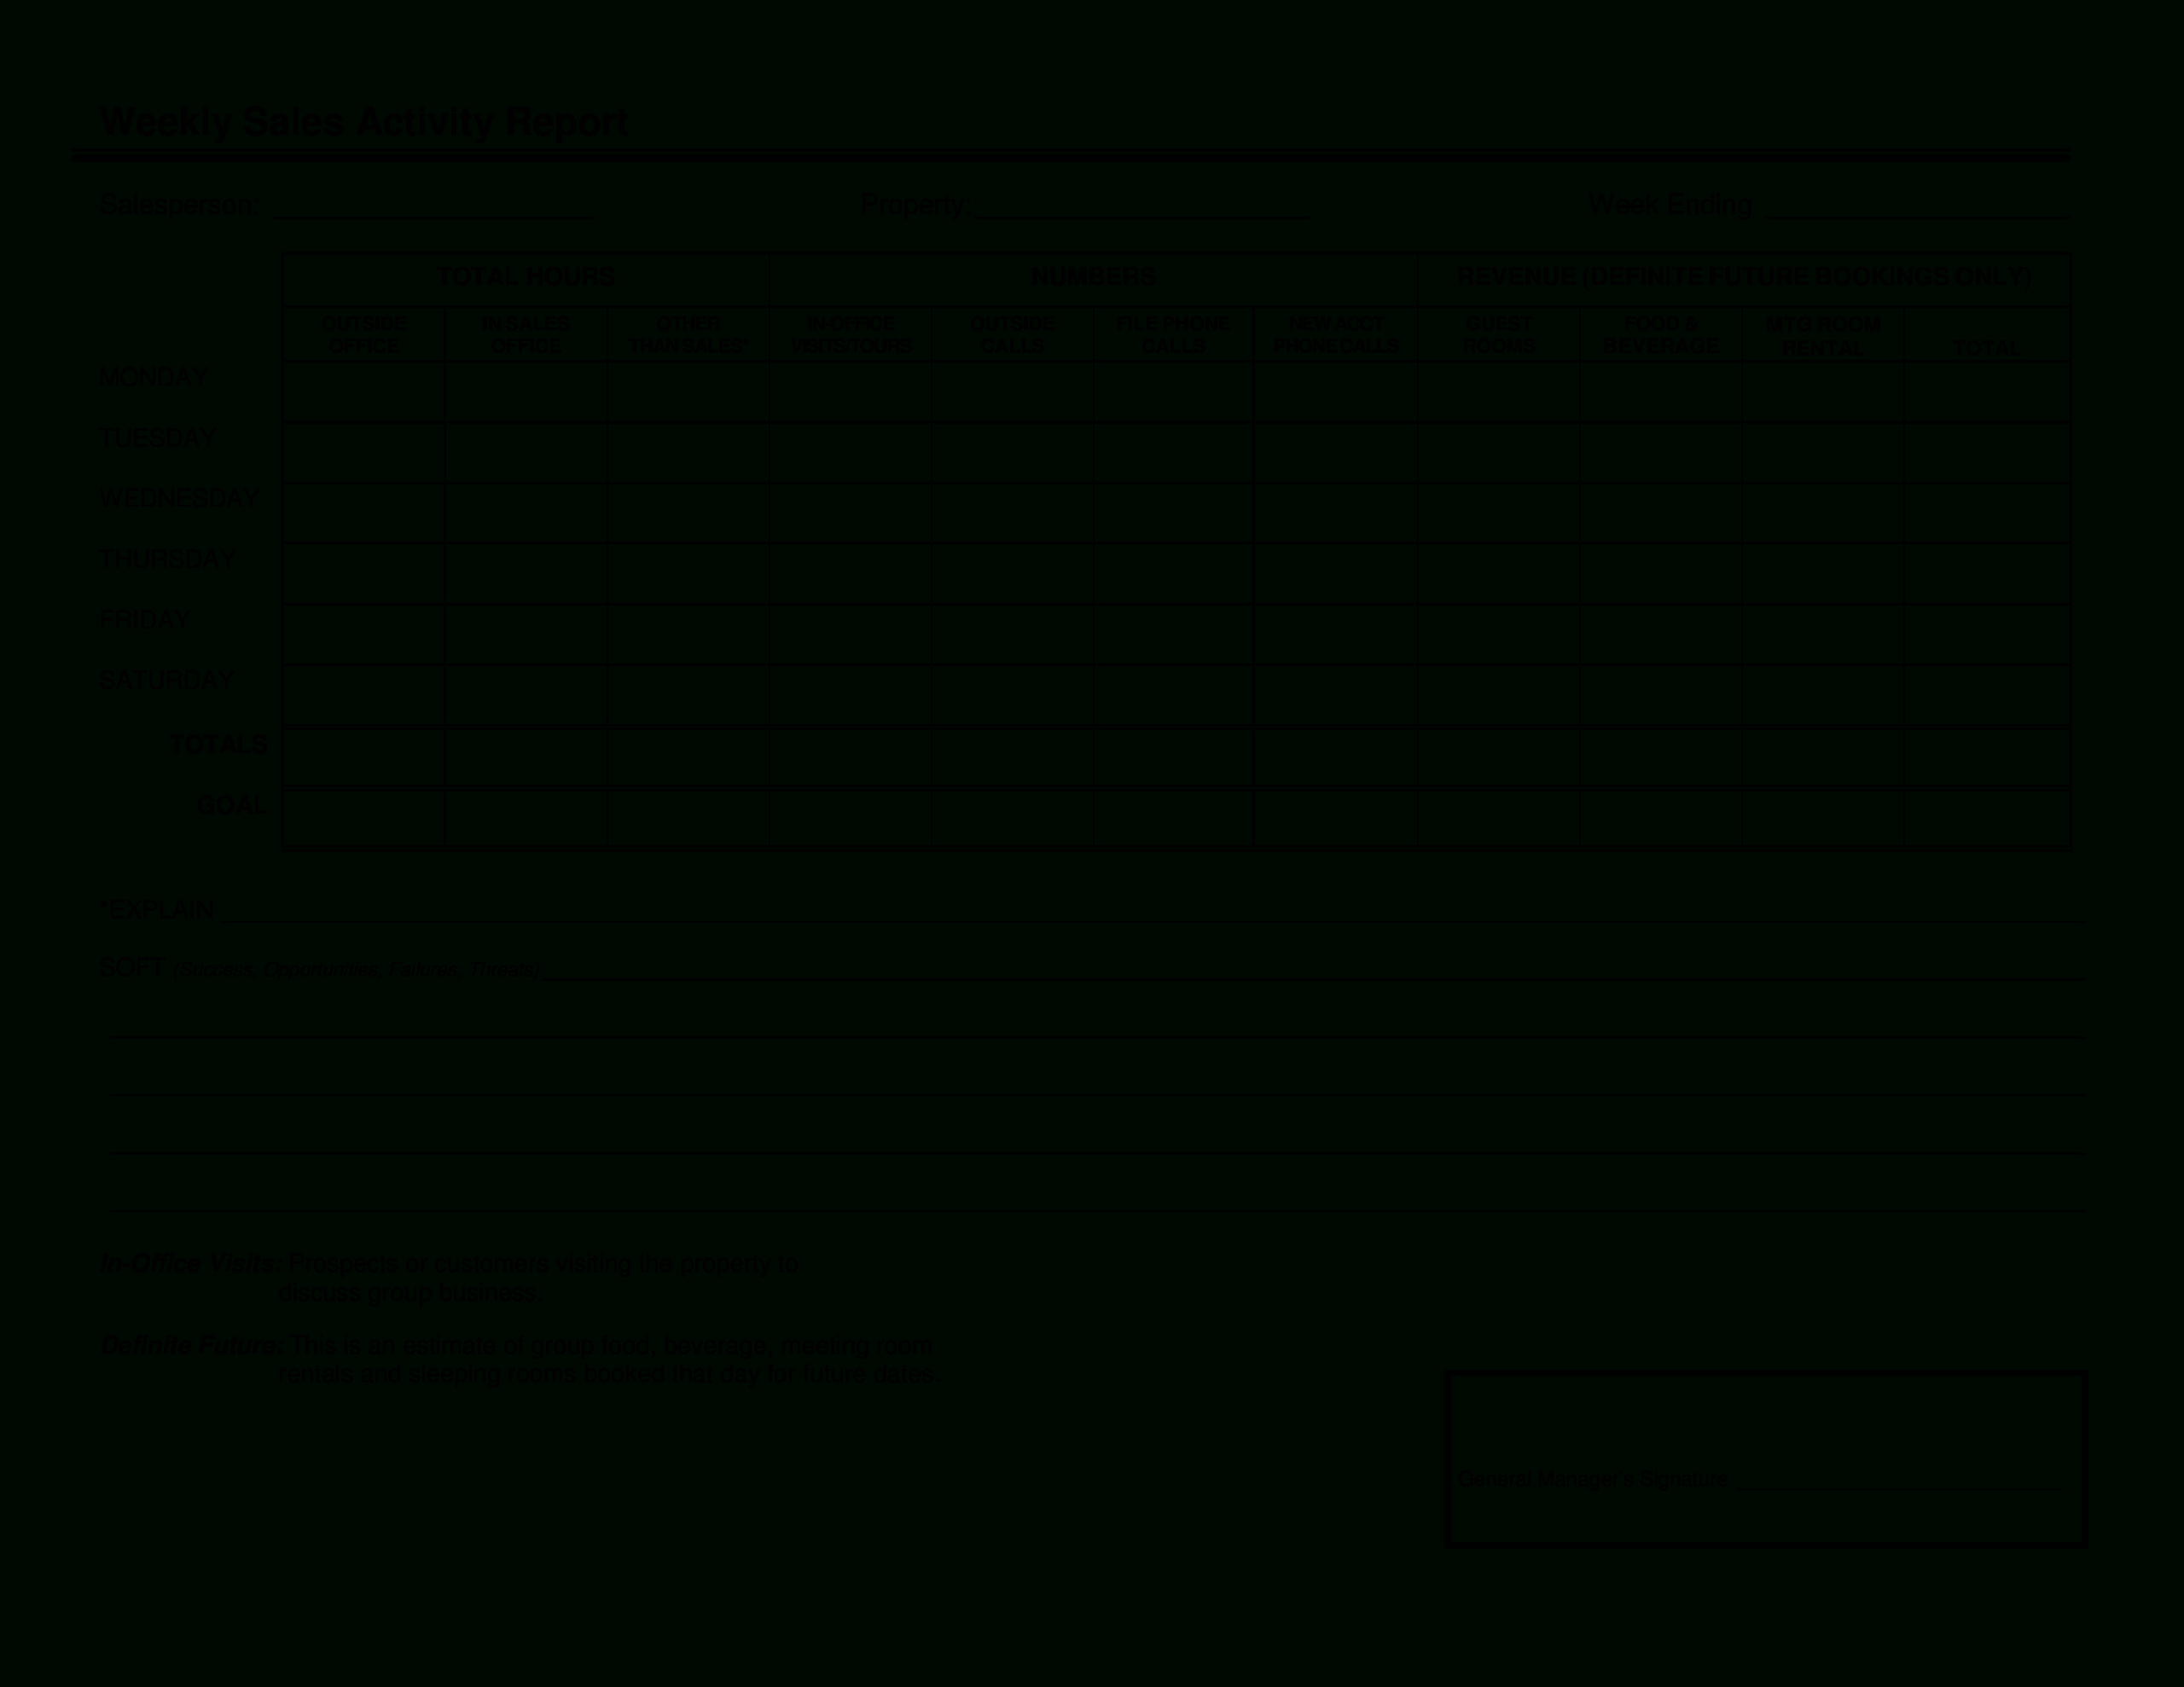 Sales Activity Report Template Free Download - Yatay Pertaining To Sales Rep Visit Report Template